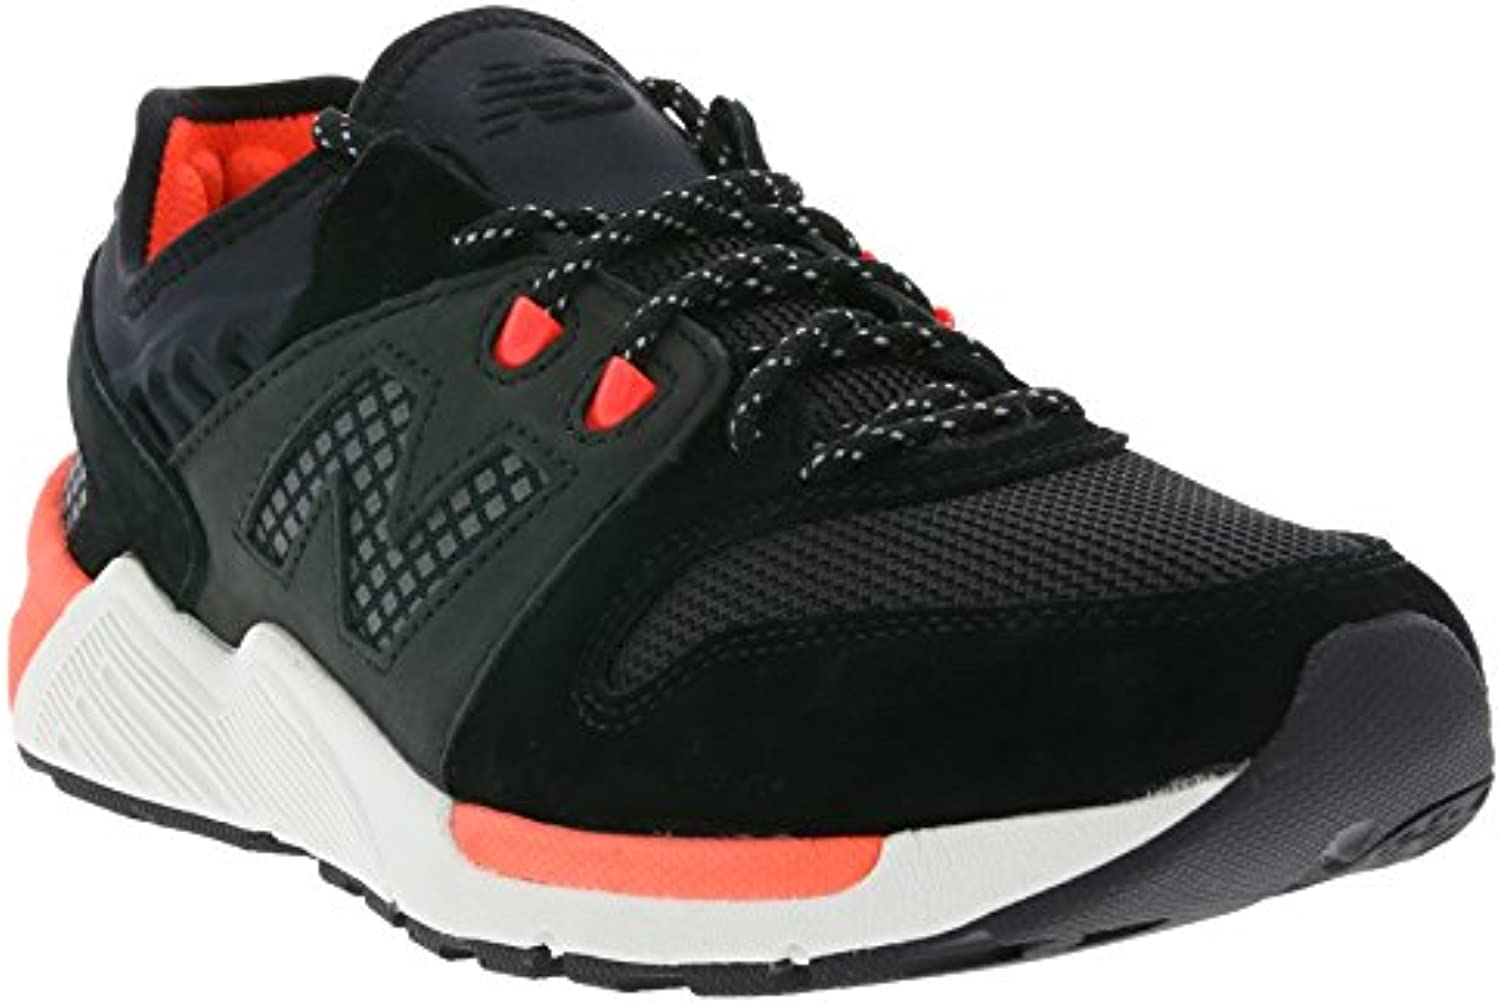 New Balance - ML009HV - ML009HV - El Color Negro - Talla: 43.0